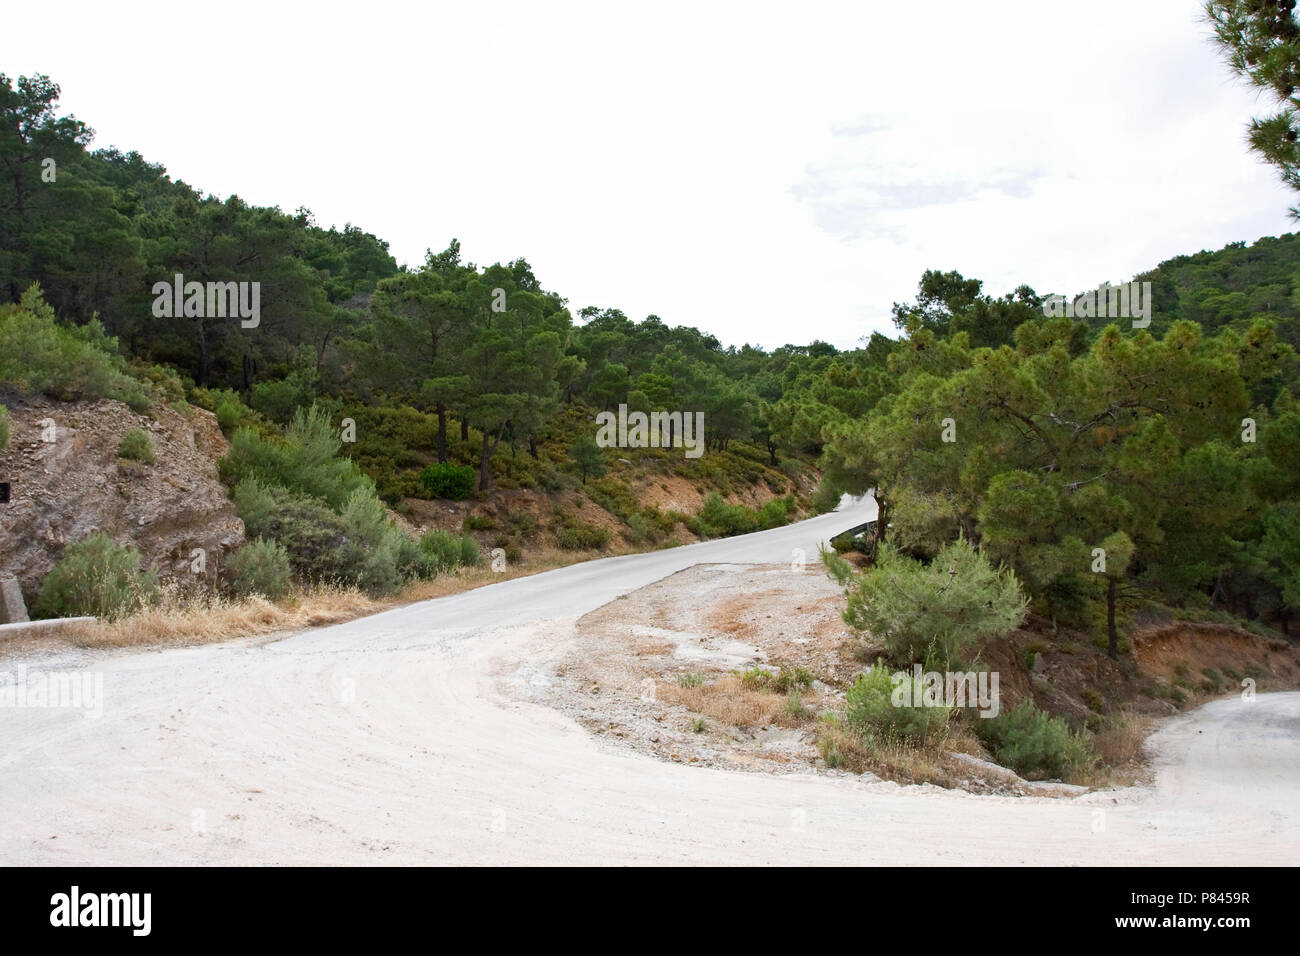 Naaldbos op Lesbos; Pine forest on Lesvos - Stock Image